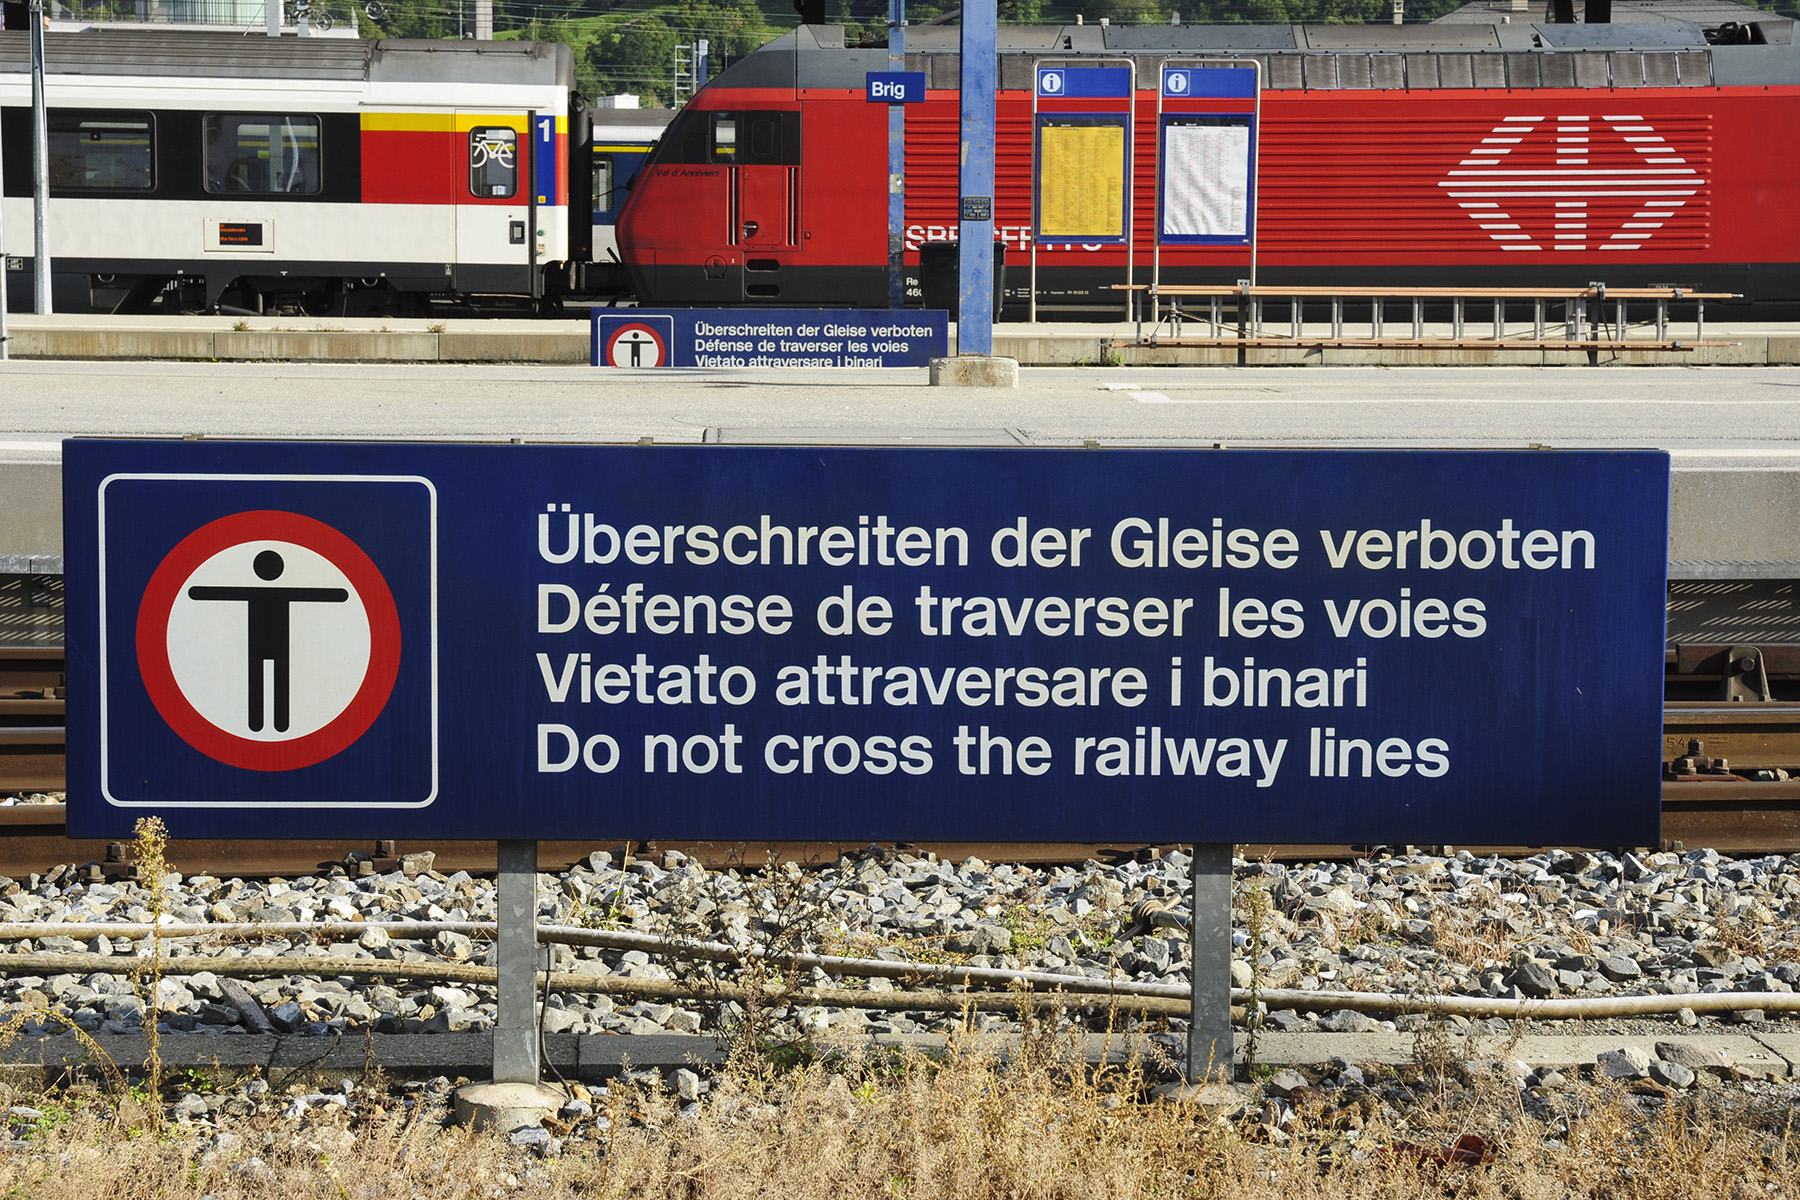 Multilingual sign at a train station in Switzerland